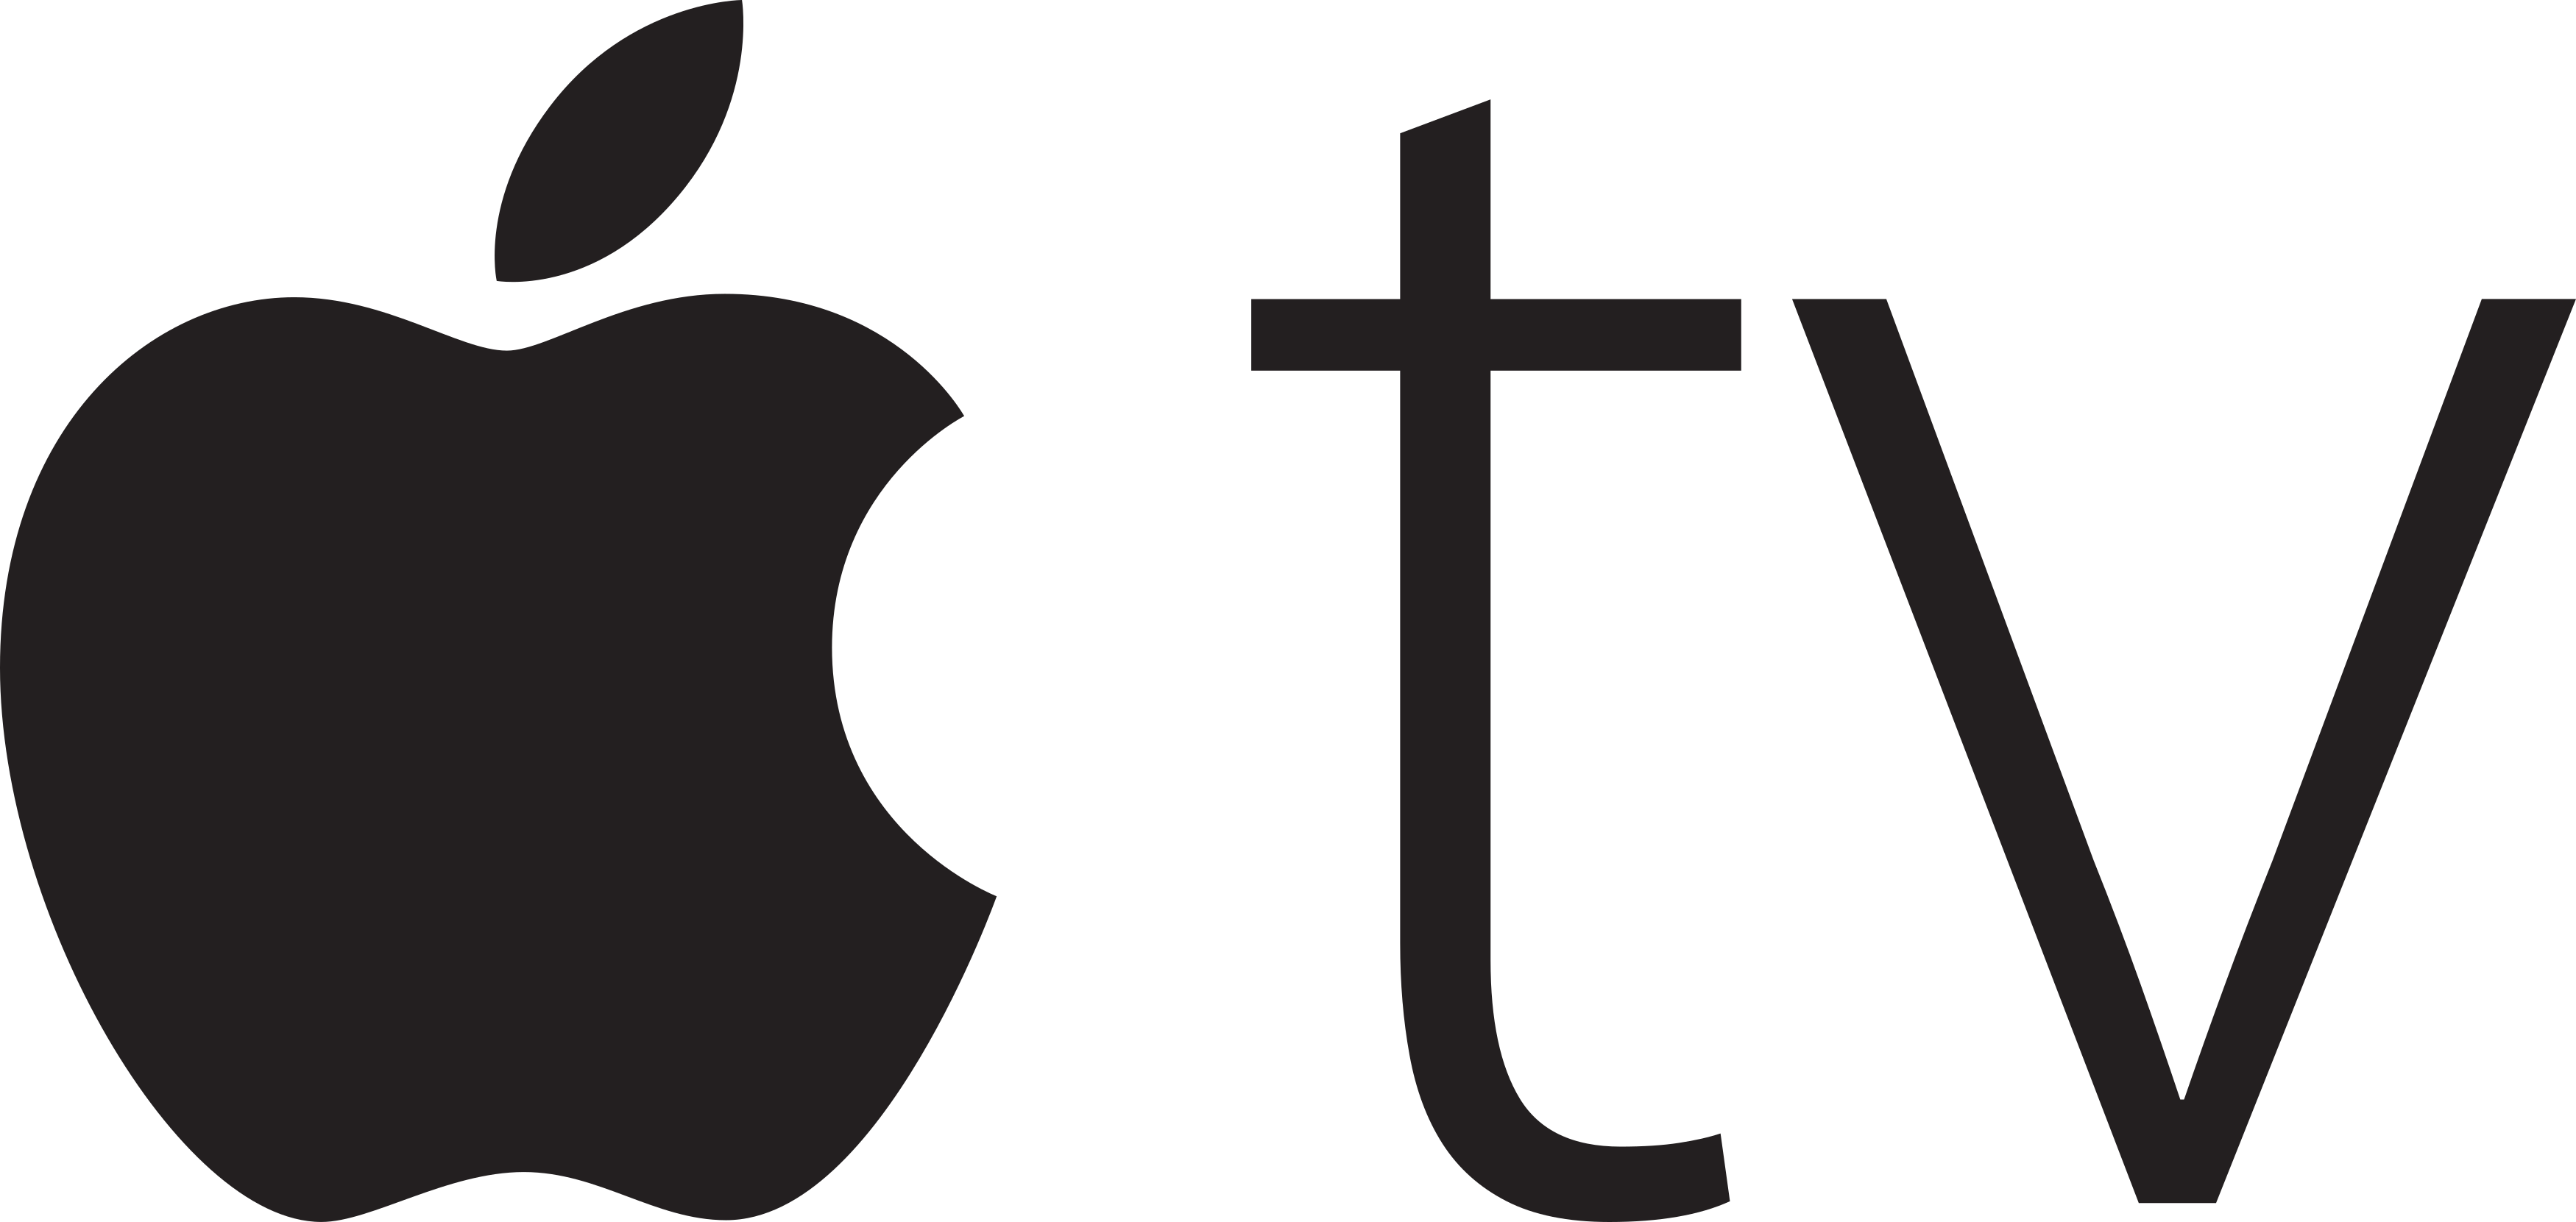 Apple TV Logo - Logodownload.org Download de Logotipos